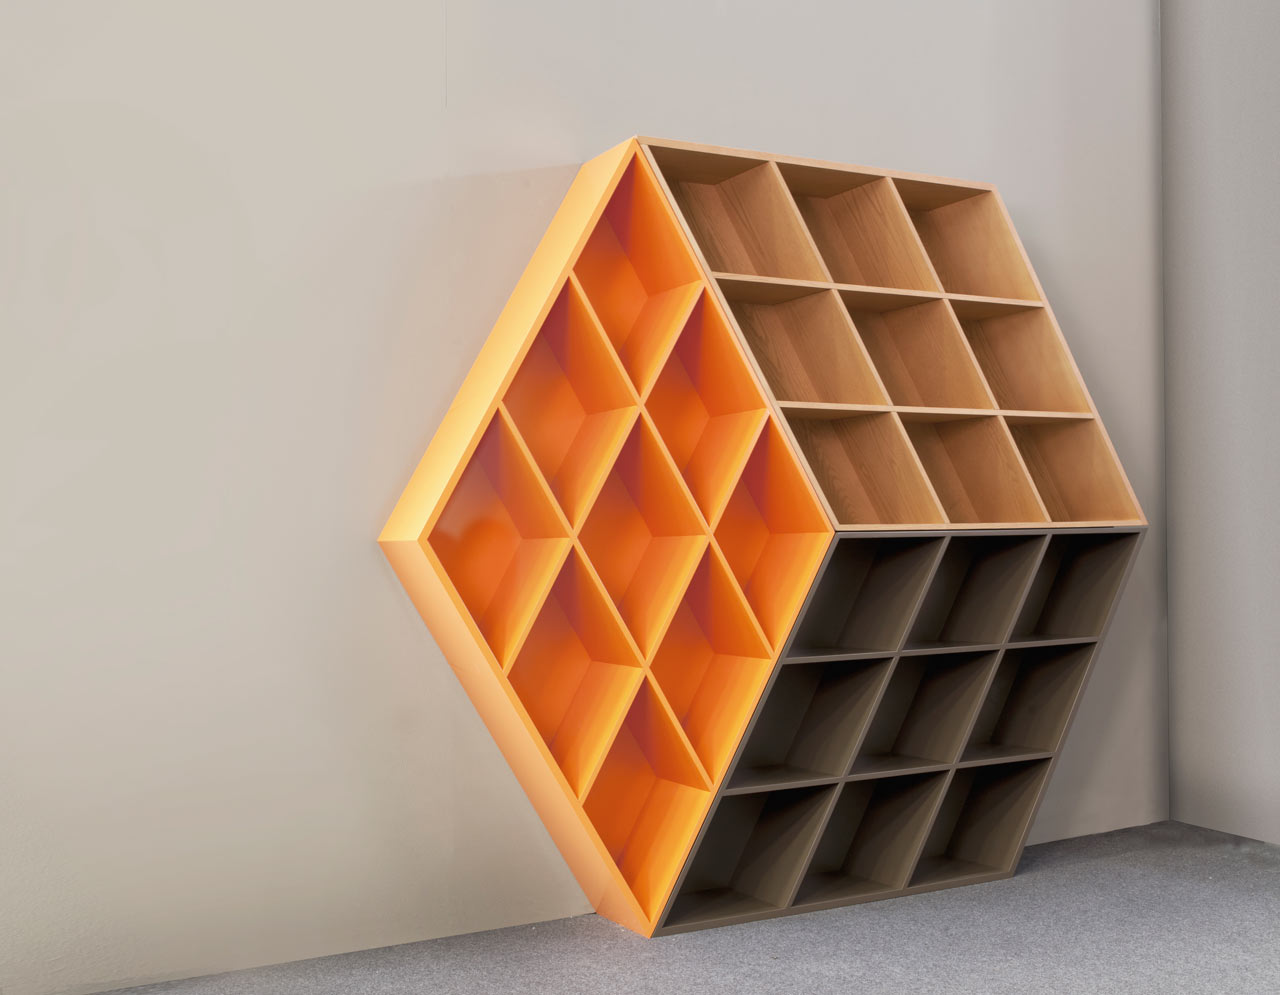 A Wooden Bookcase Inspired by the Rubik's Cube - Design Milk